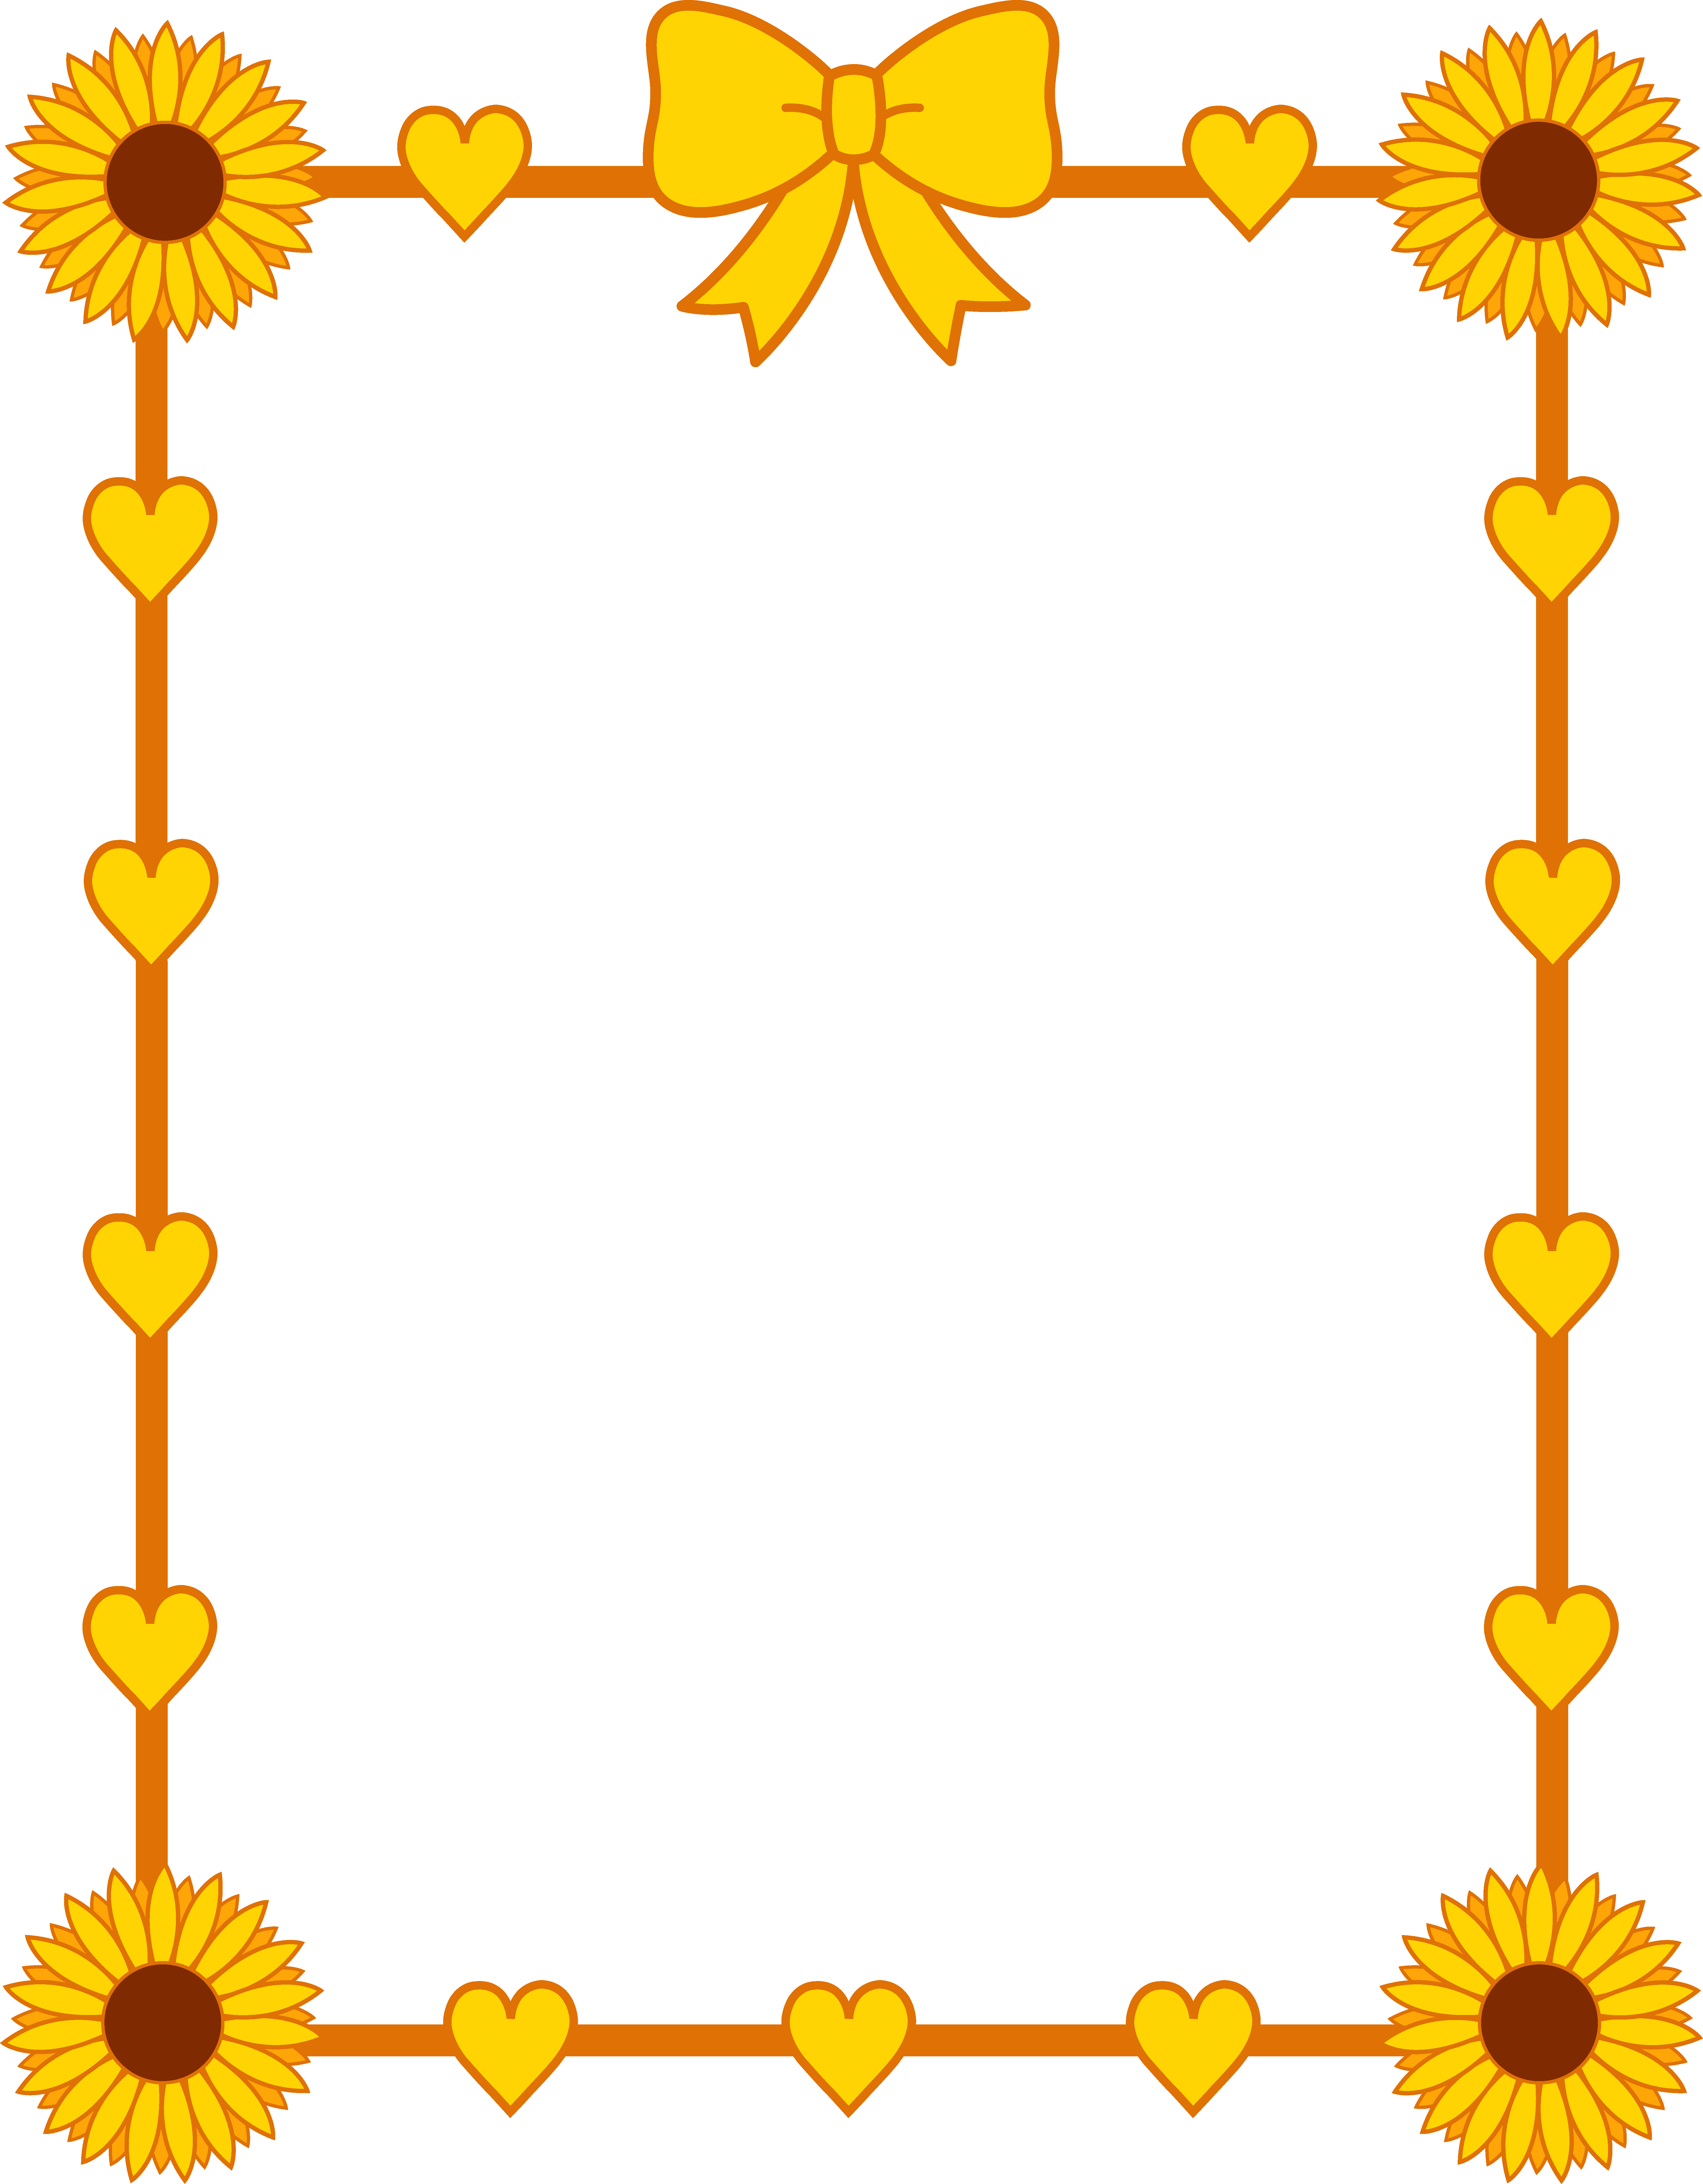 sunflower_yellow_hearts_frame_border.png (6671×8554) - PNG Cute Borders